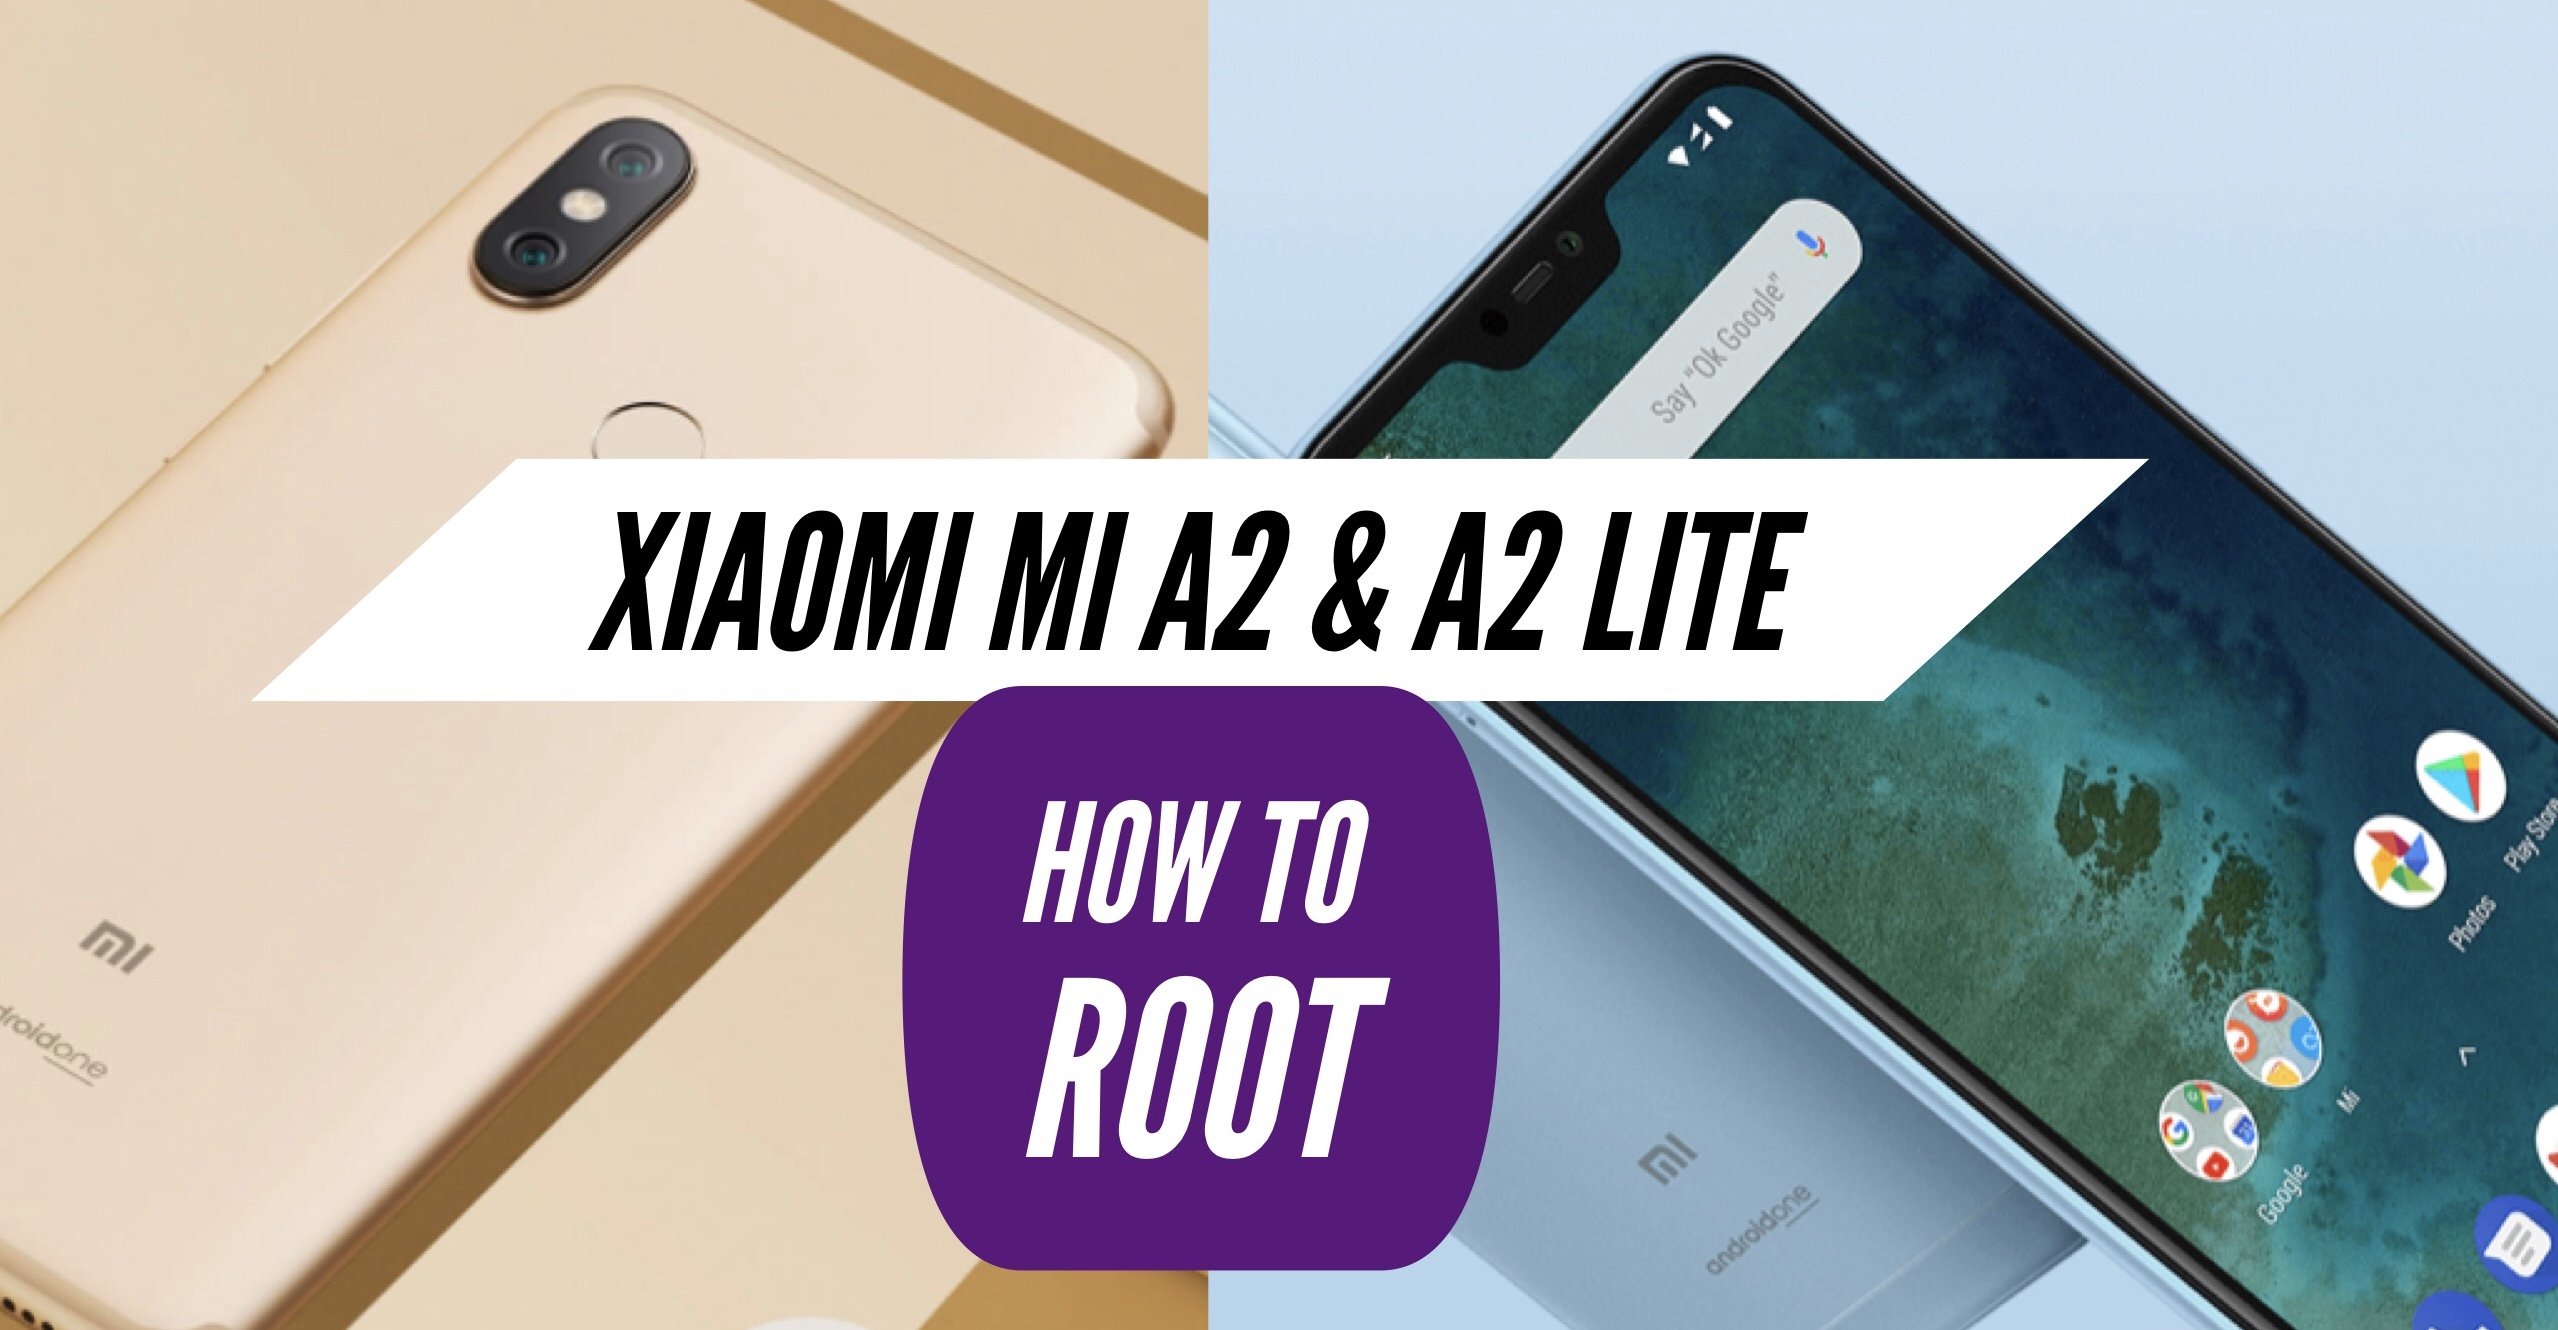 How to Root Xiaomi Mi A2 & A2 Lite with SuperSU & Magisk + MORE!